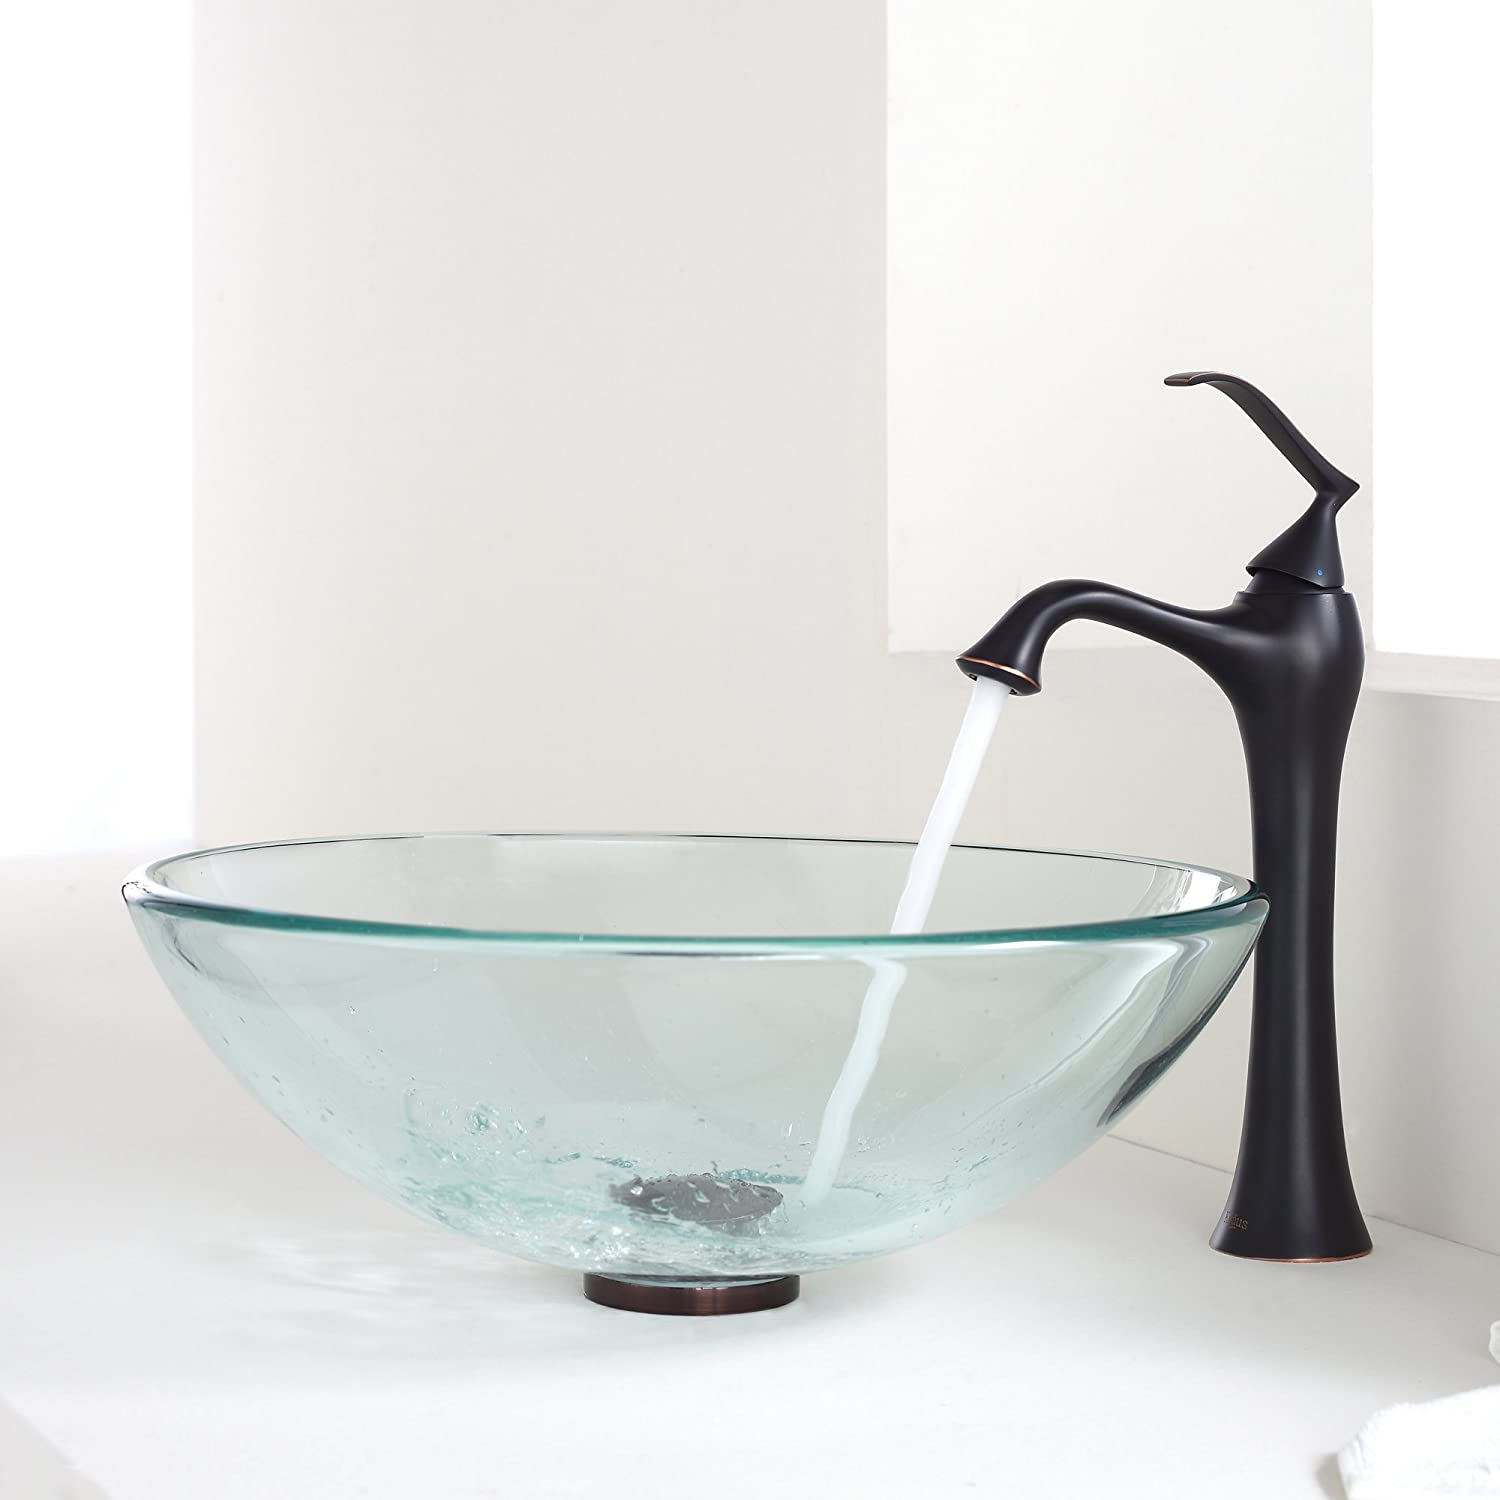 Kraus KEF 15000 PU15ORB Ventus Single Lever Vessel Bathroom Faucet With Pop  Up Drain Oil Rubbed Bronze   Bathroom Sink Faucets   Amazon.com